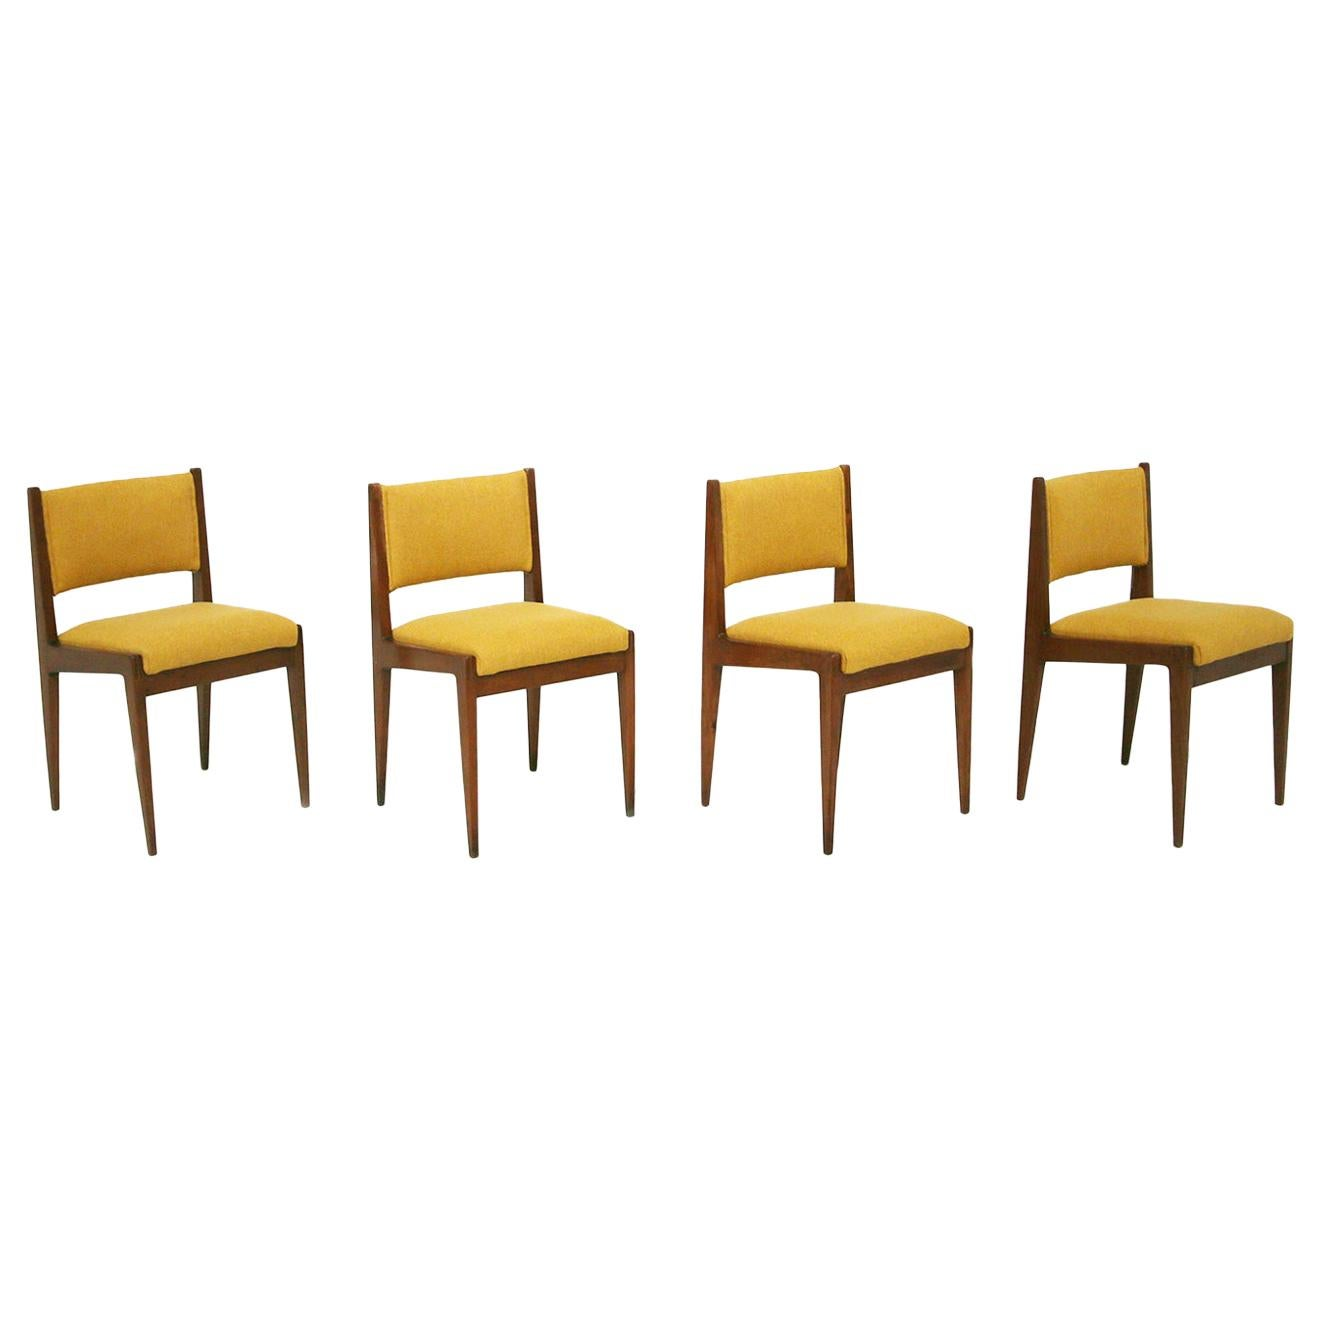 Set of Four Yellow Chair by Gianfranco Frattini for Bottega Ghianda, 1960s